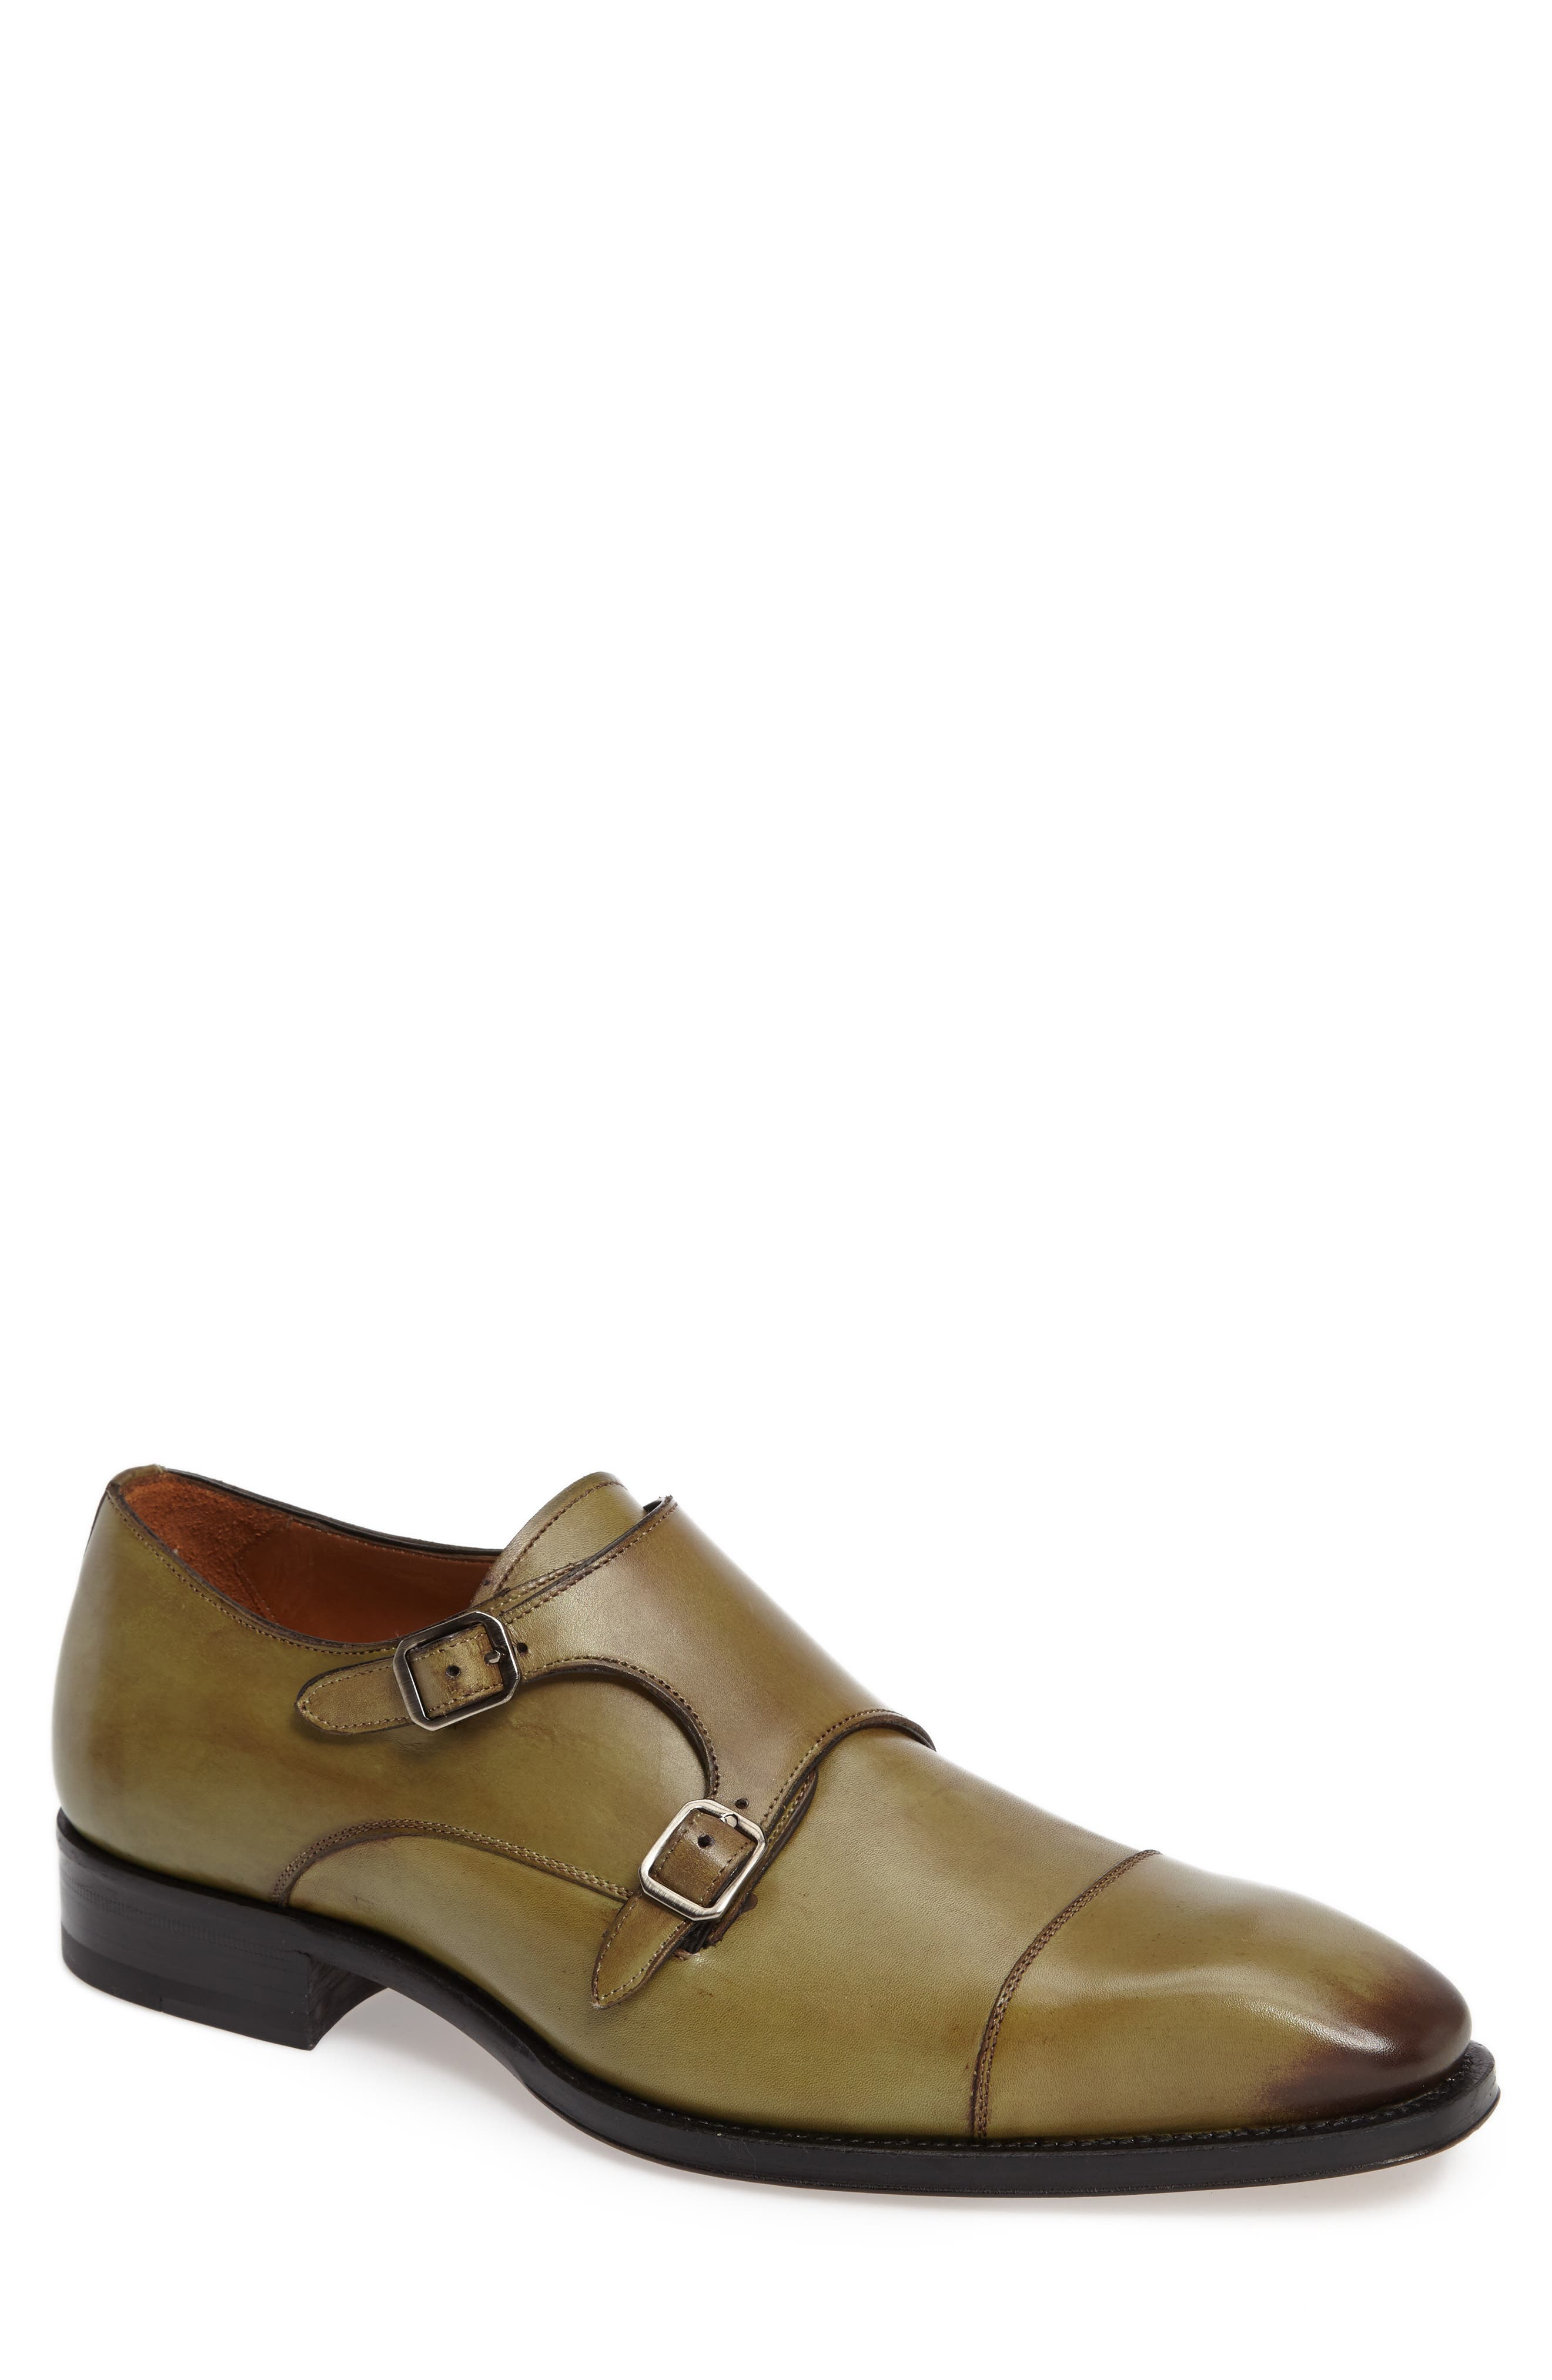 Mezlan Cajal Double Monk Strap Cap Toe Shoe (Men)